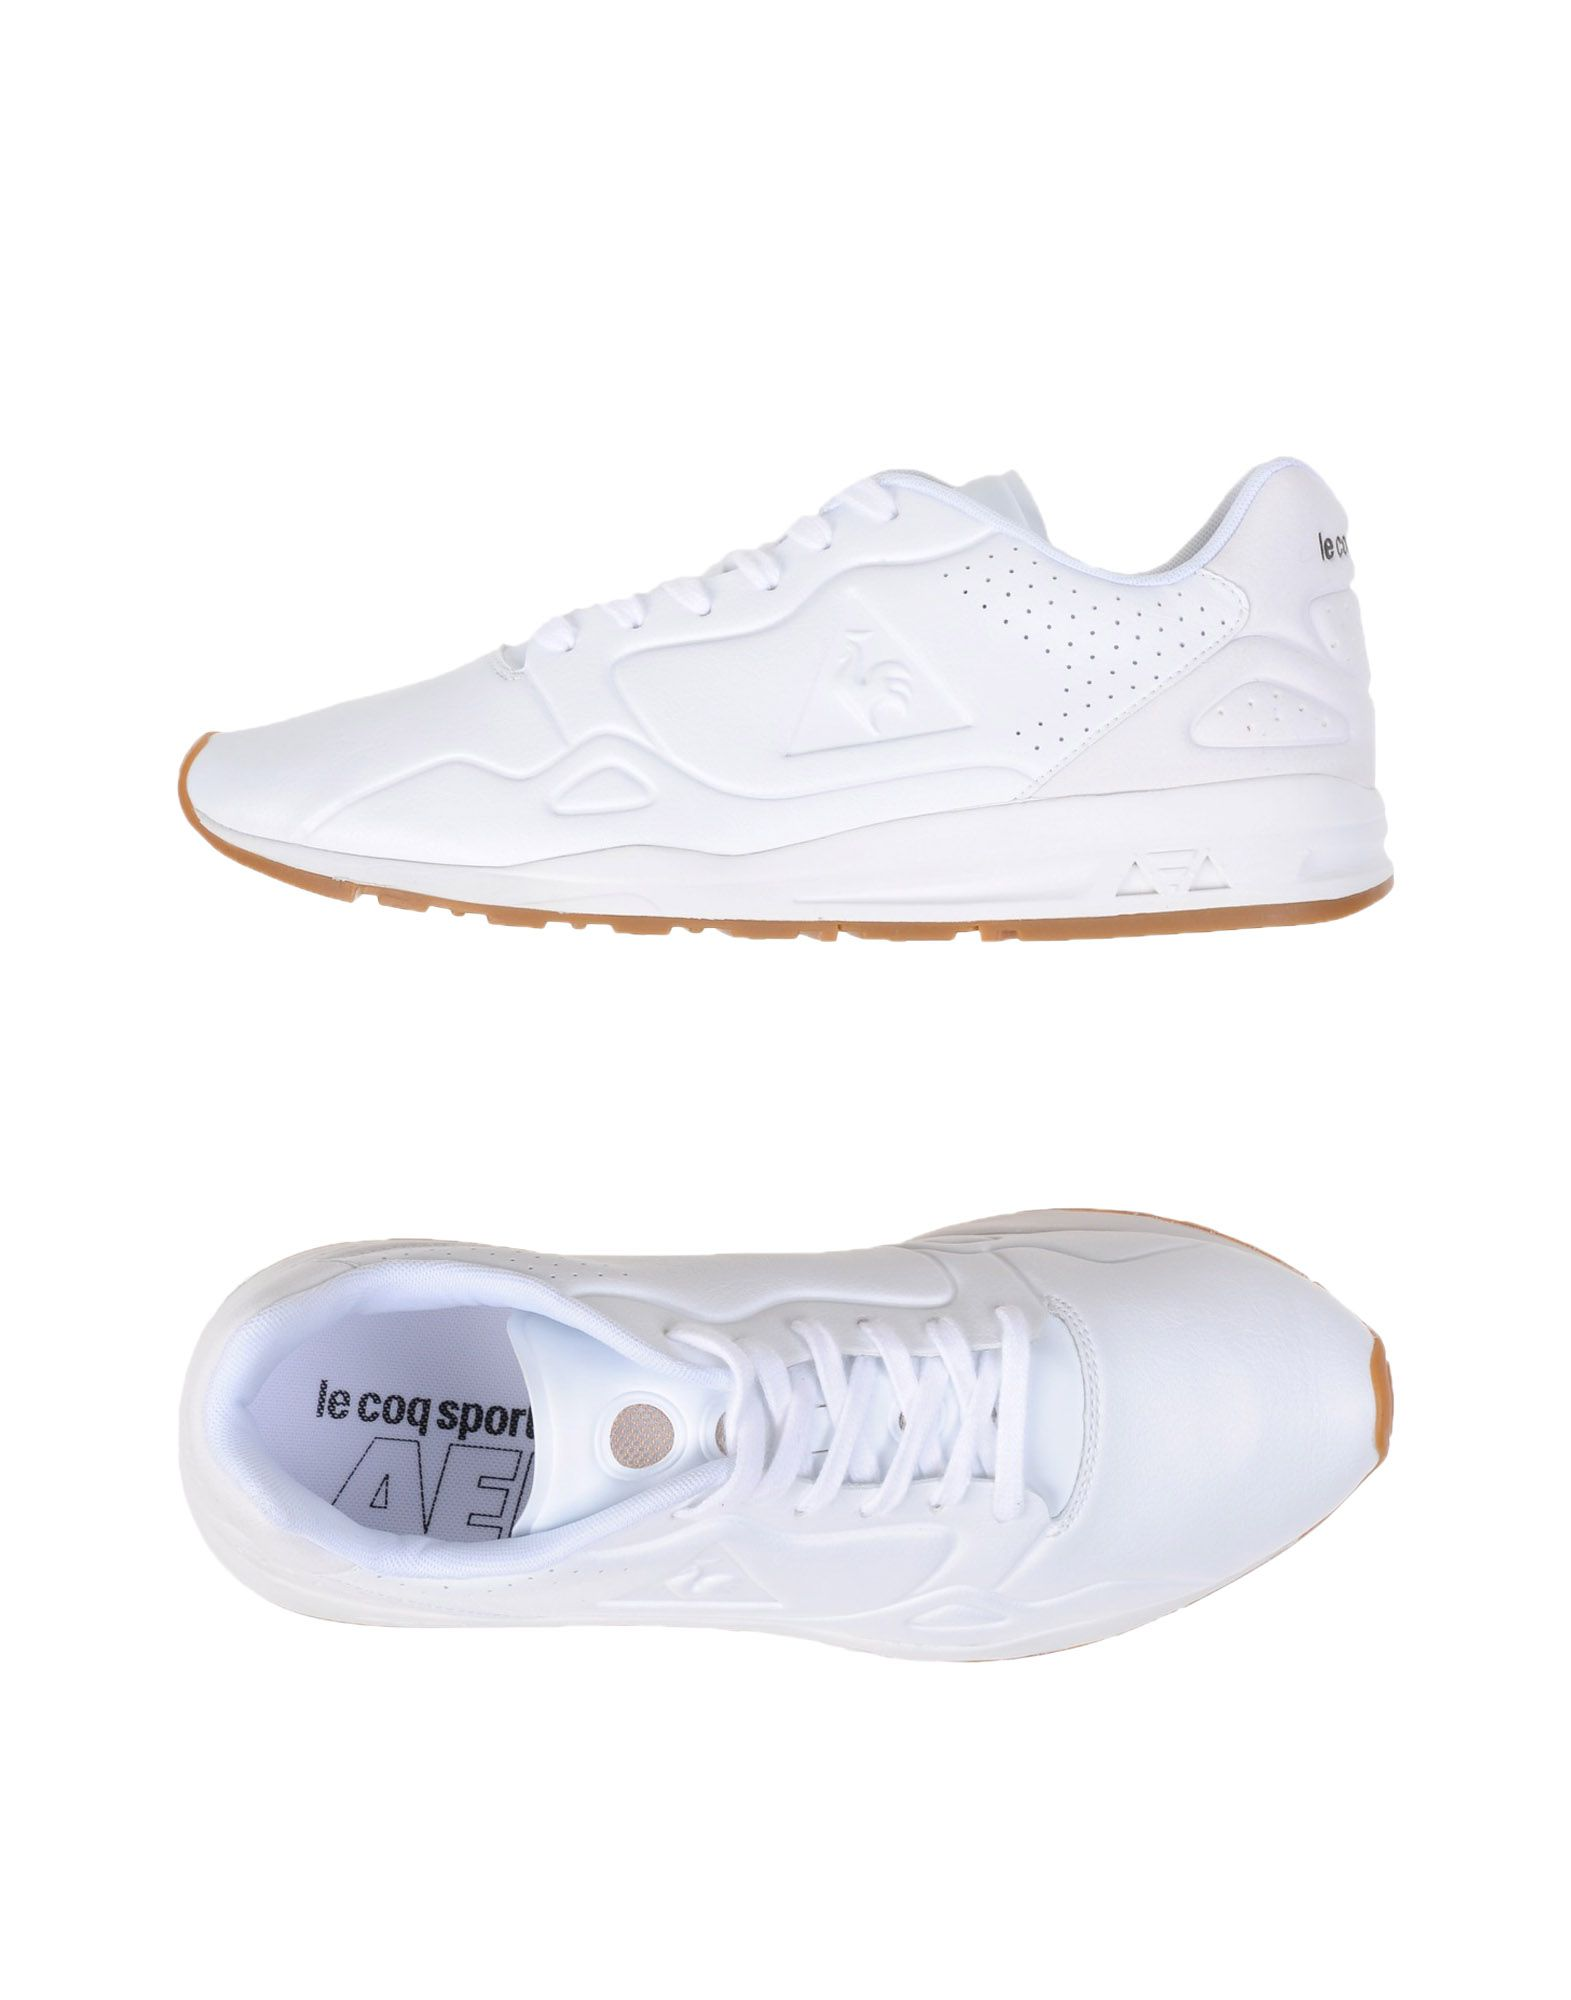 Le Coq Coq Coq Sportif Lcs R9xx S Lea - Sneakers - Men Le Coq Sportif Sneakers online on  United Kingdom - 11109371MK 177864